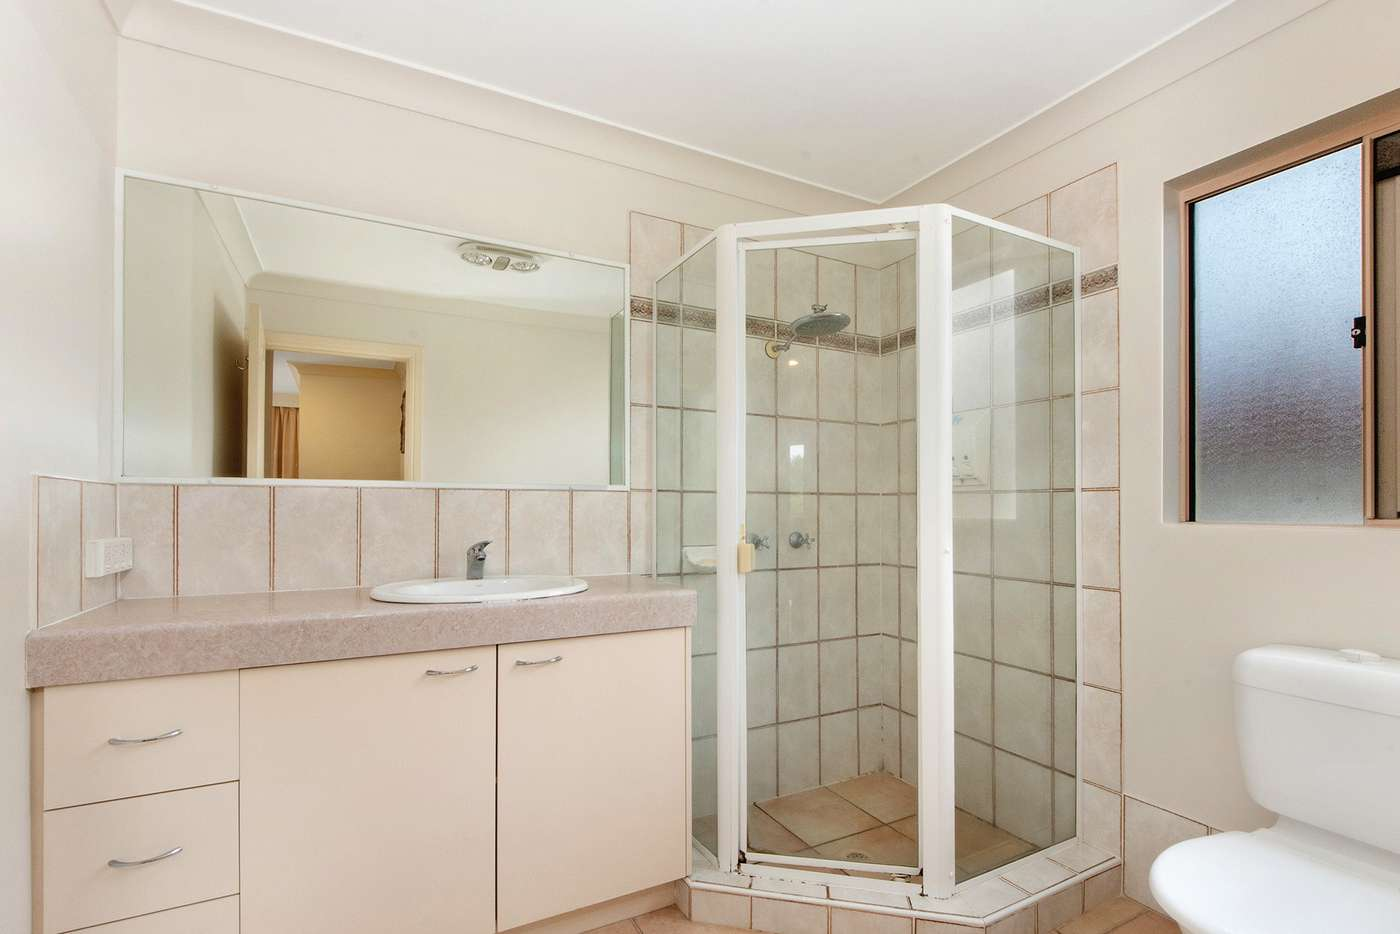 Sixth view of Homely house listing, 8/3 Fortuna Place, Parkwood QLD 4214